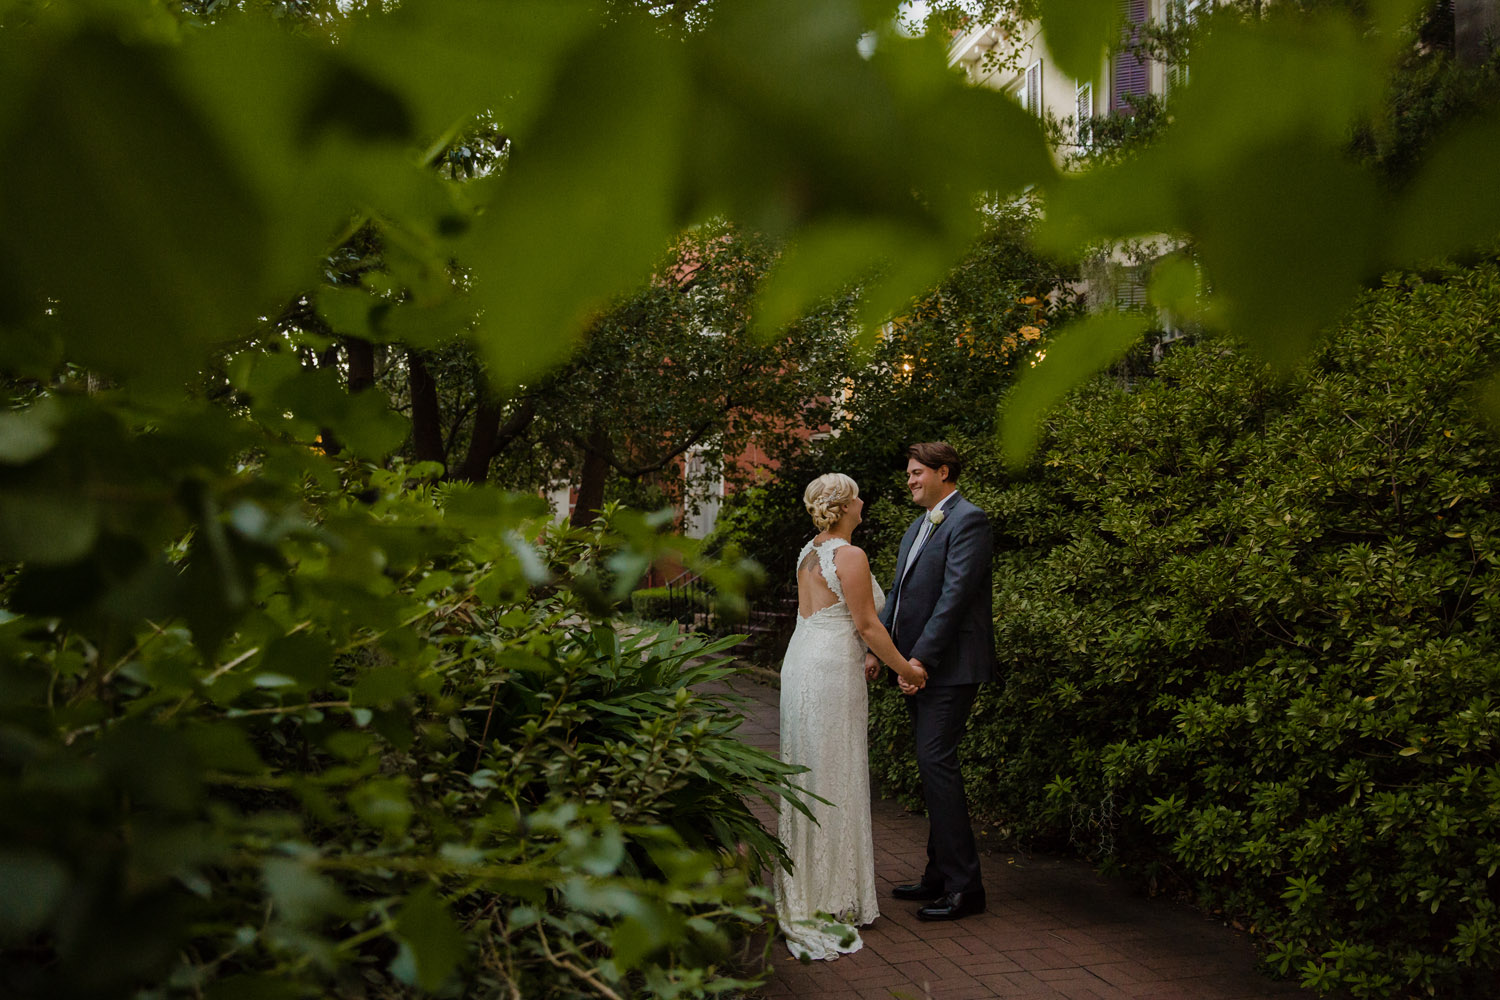 Atlanta Wedding Photographers Savannah Elopement Photographer Destination Photography_1055.jpg